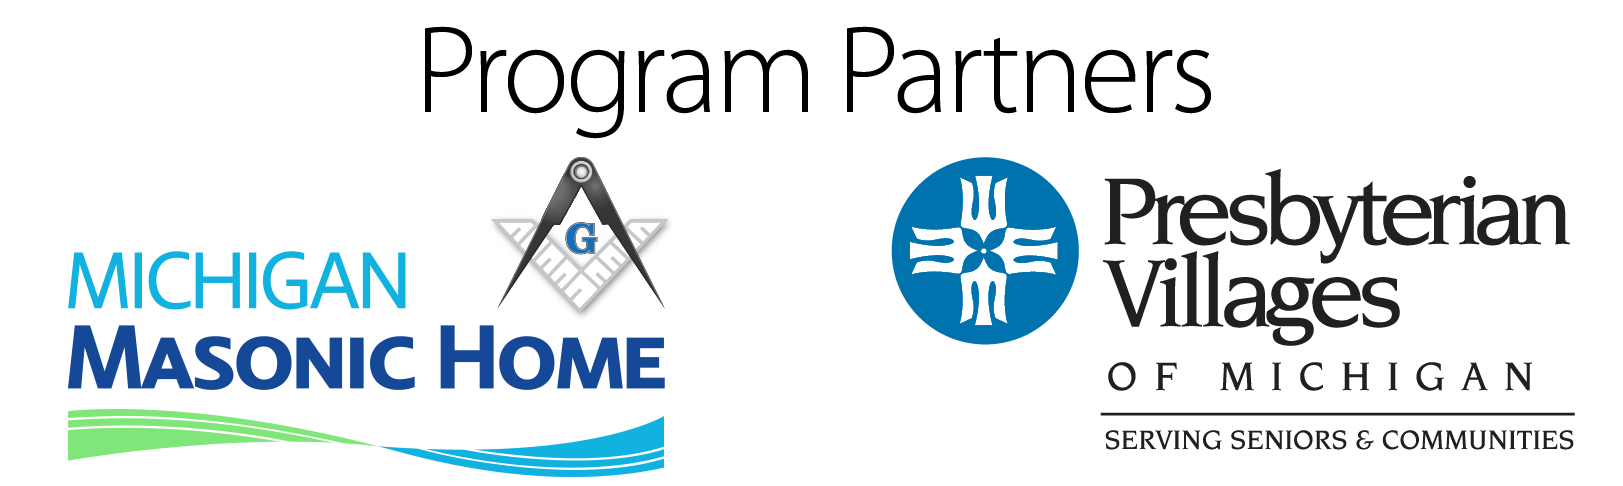 Logos for PACE Central Michigan Program Partners: Michigan Masonic Home and Presbyterian Villages